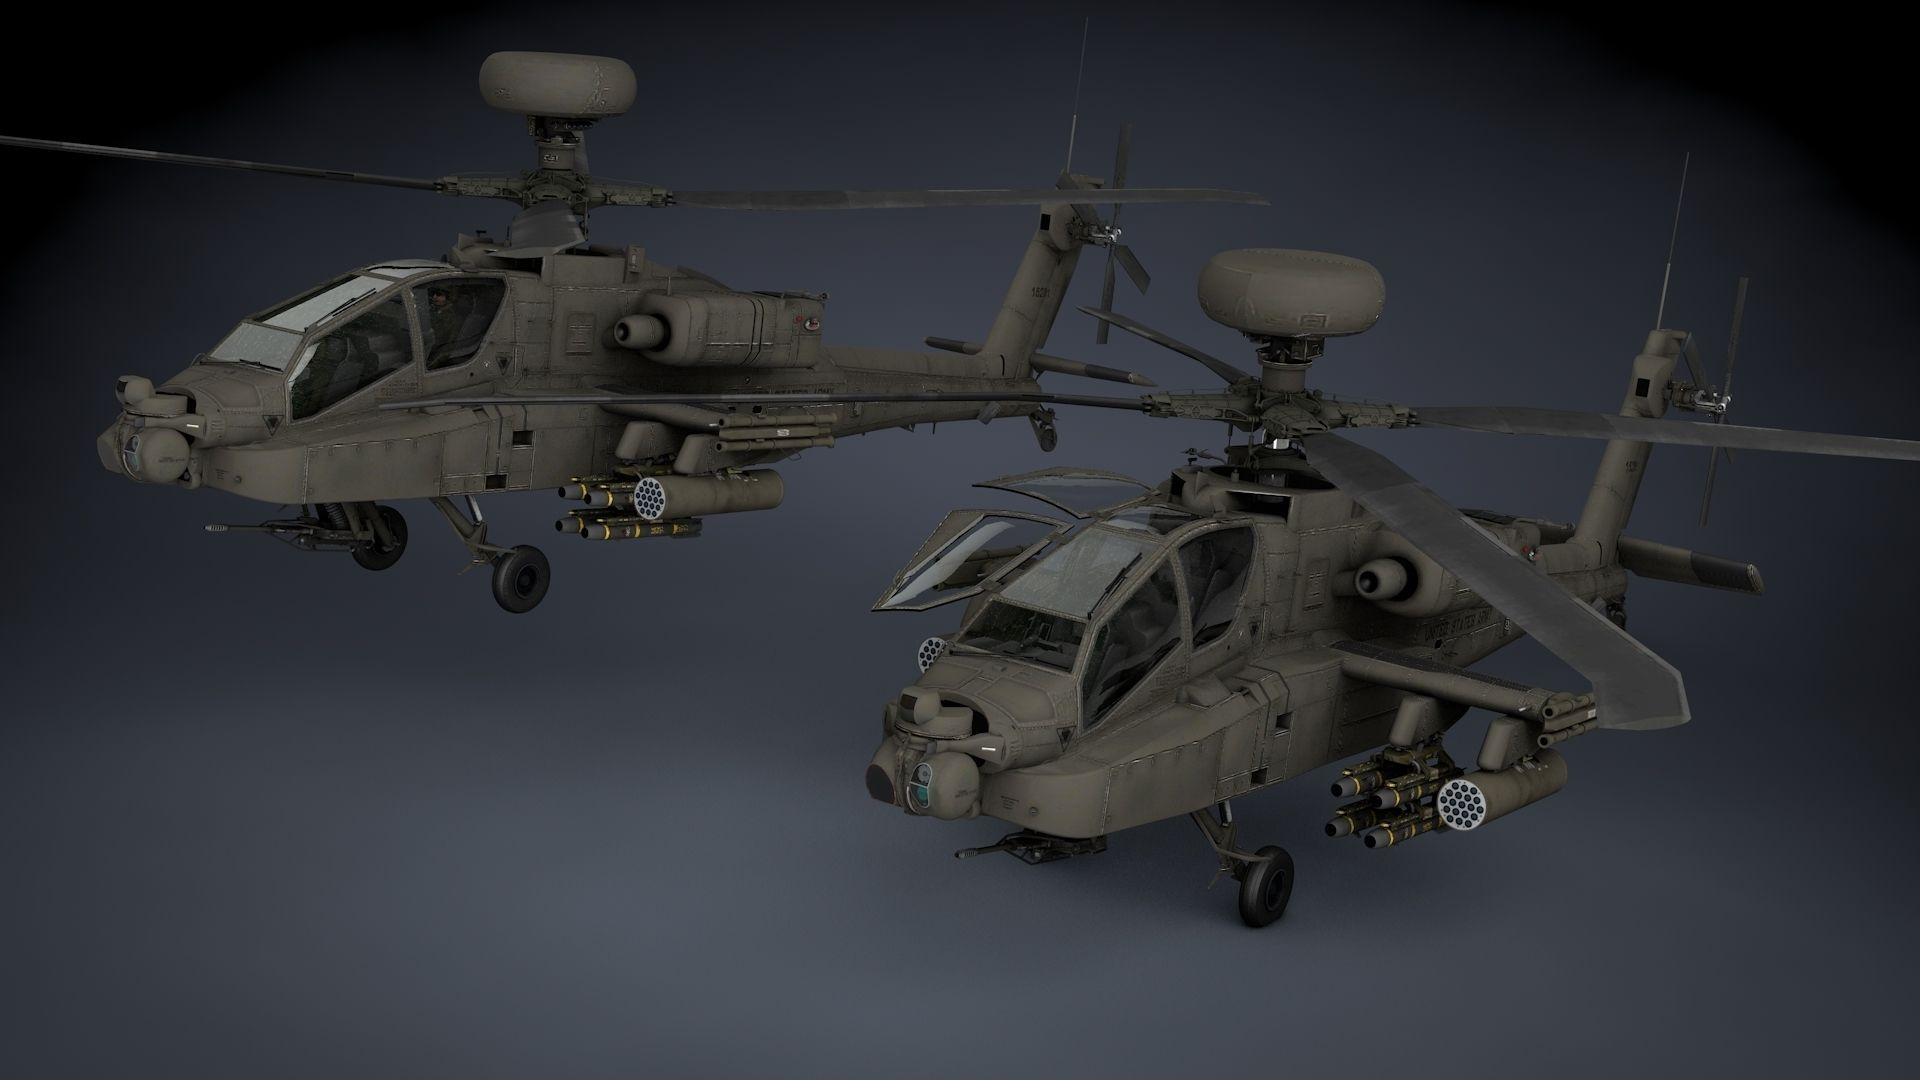 Boeing AH-64D Apache Longbow Helicopter